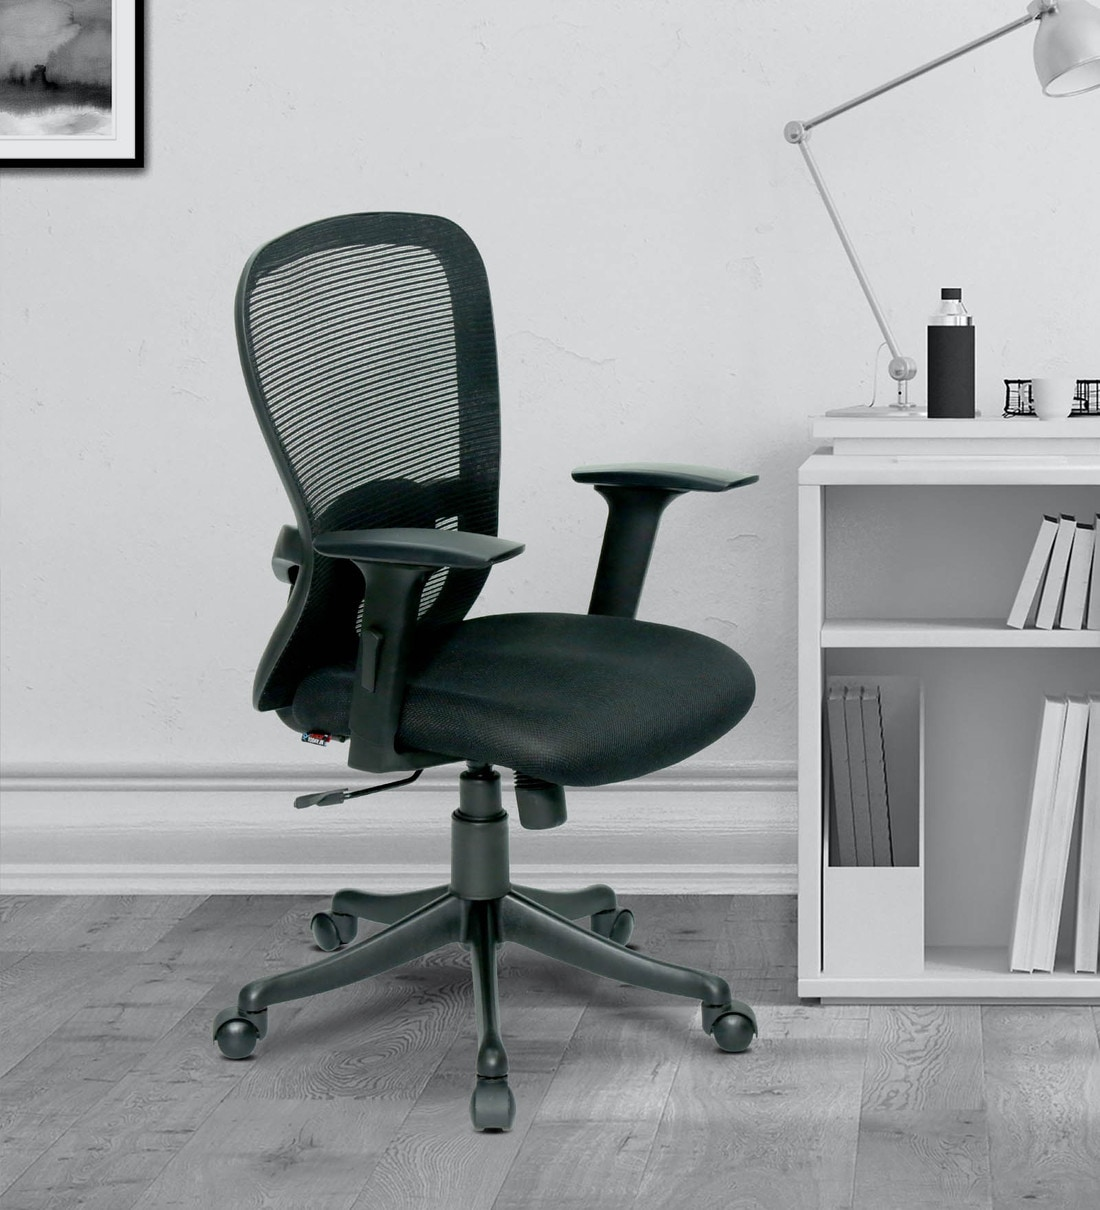 Buy Vancouver Mid Back Ergonomic Chair In Black Colour By Office Today Online Mid Back Ergonomic Chairs Chairs Furniture Pepperfry Product